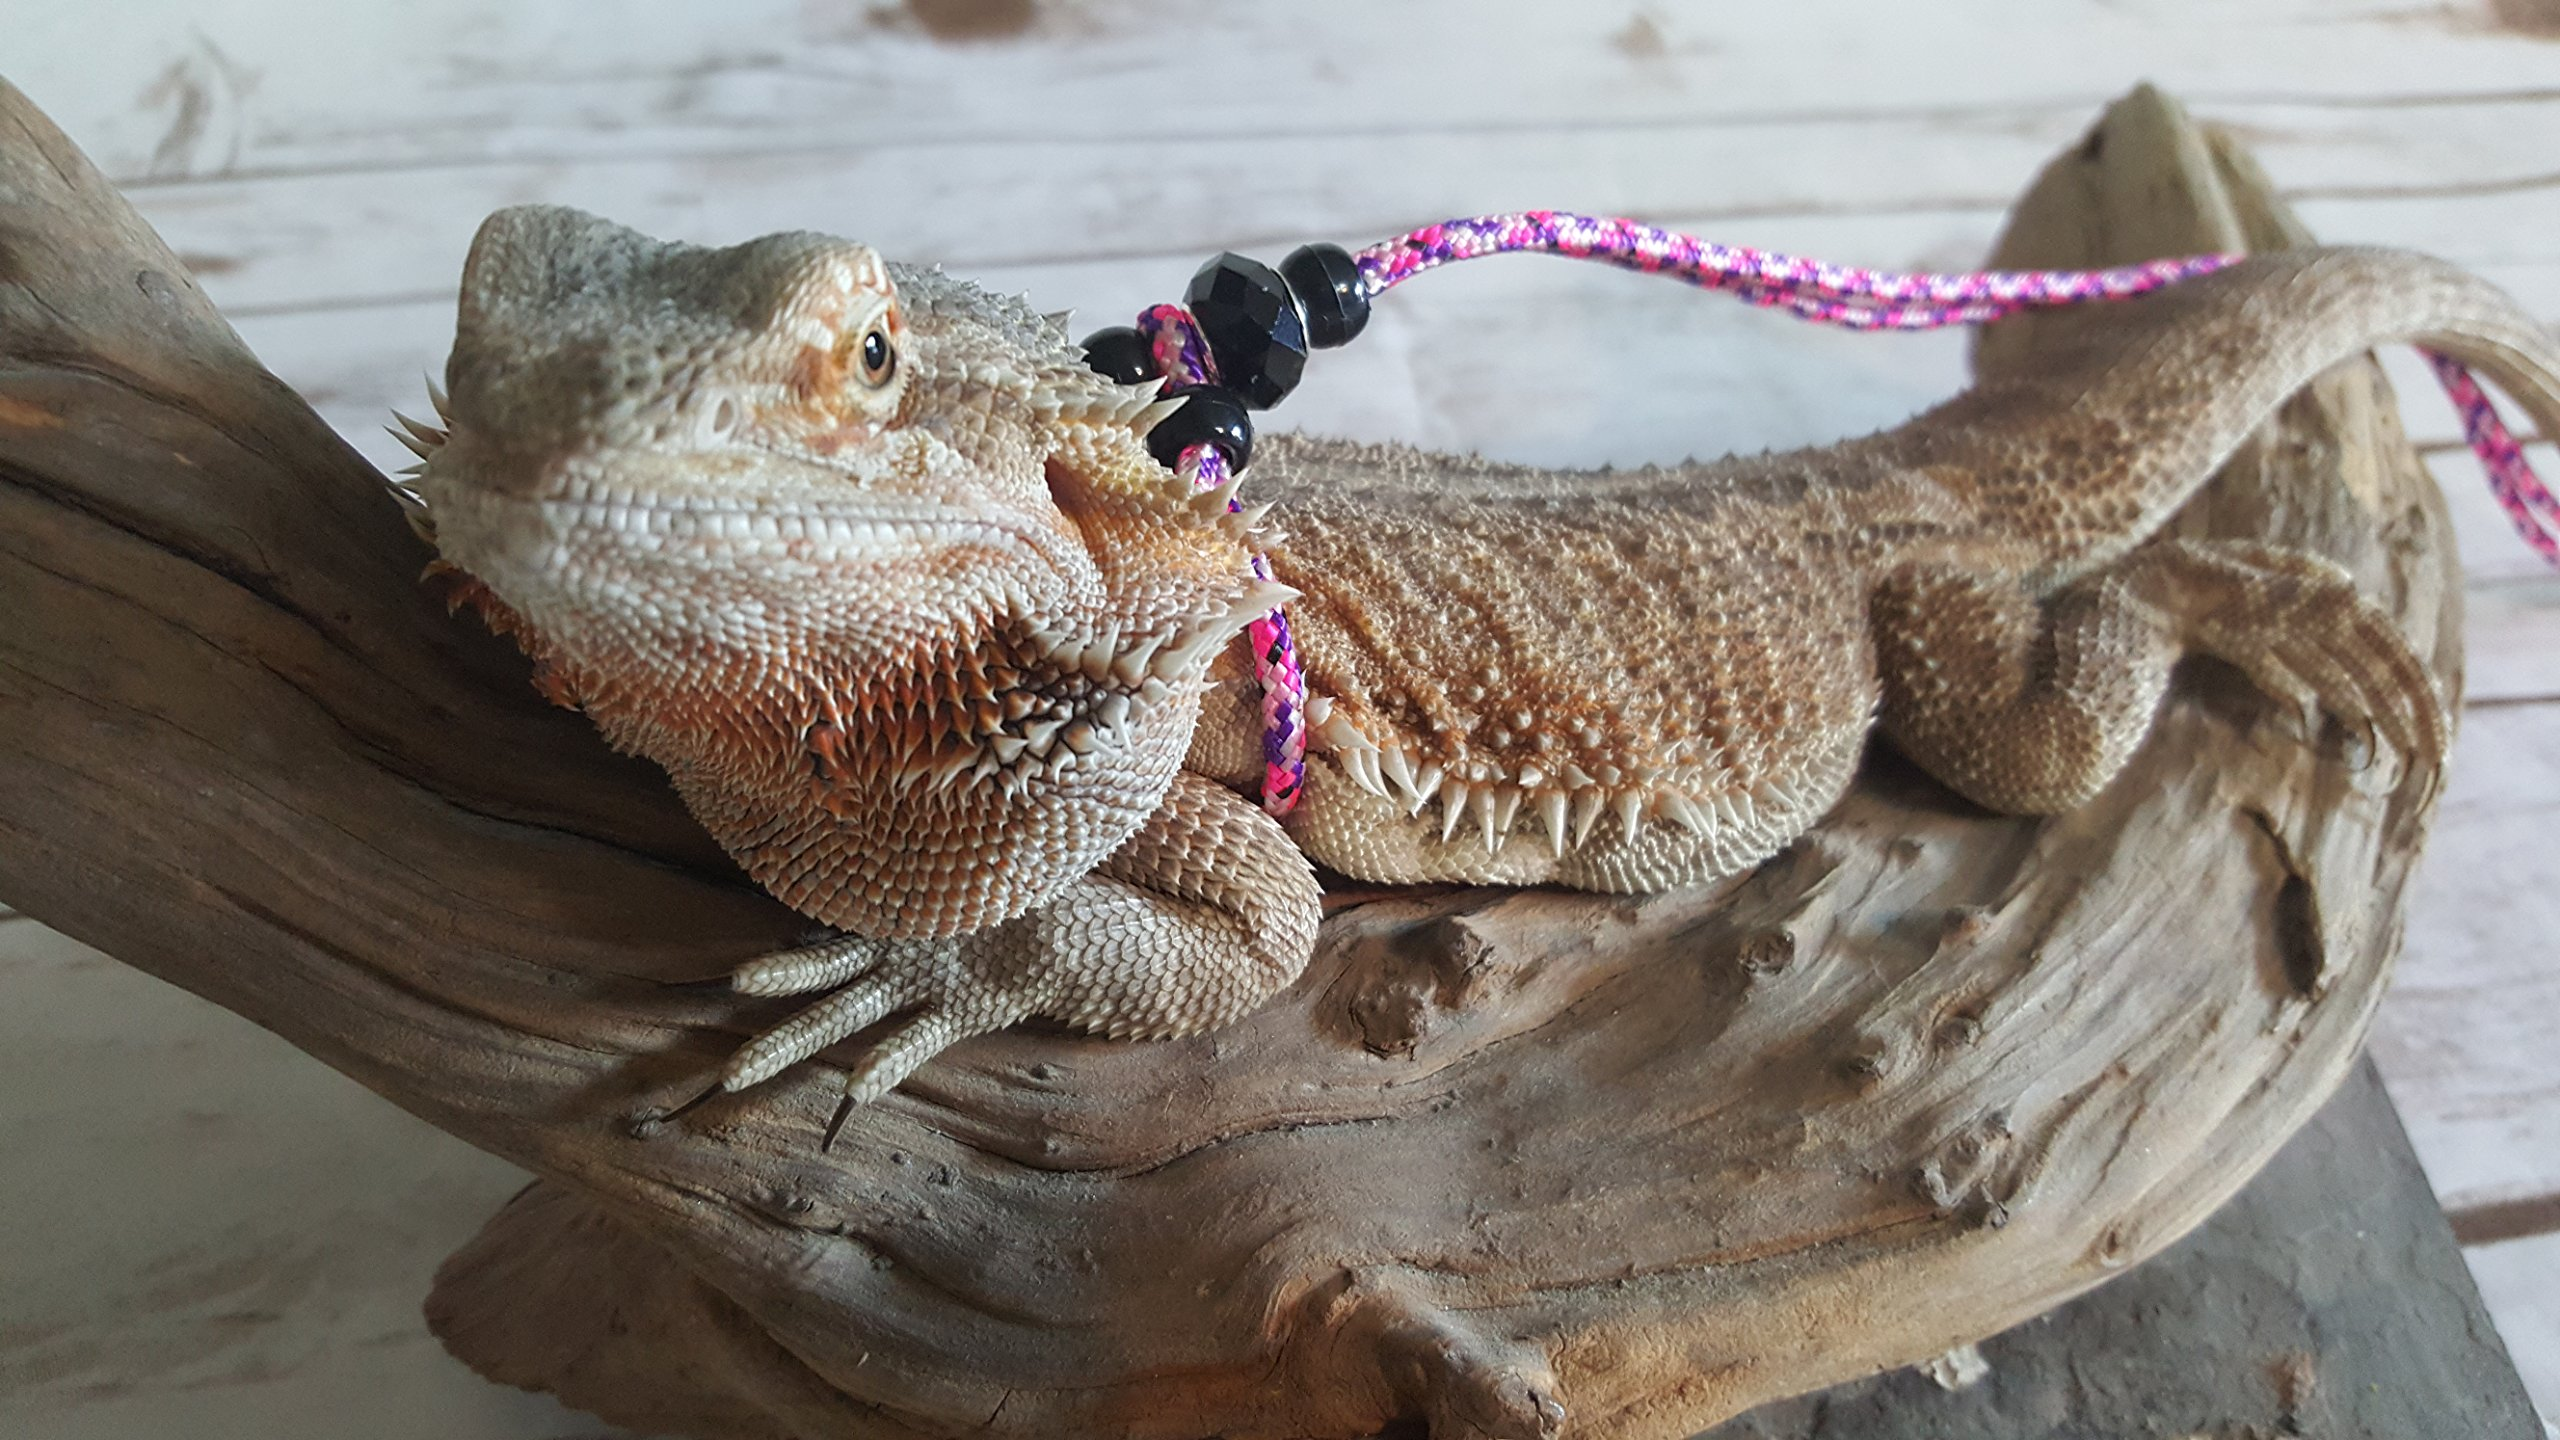 Adjustable Reptile Leash Green Harness Great for Reptiles or Small Pets - 100% Adjustable Green, Orange, and Blue Option (6 Ft Pink)